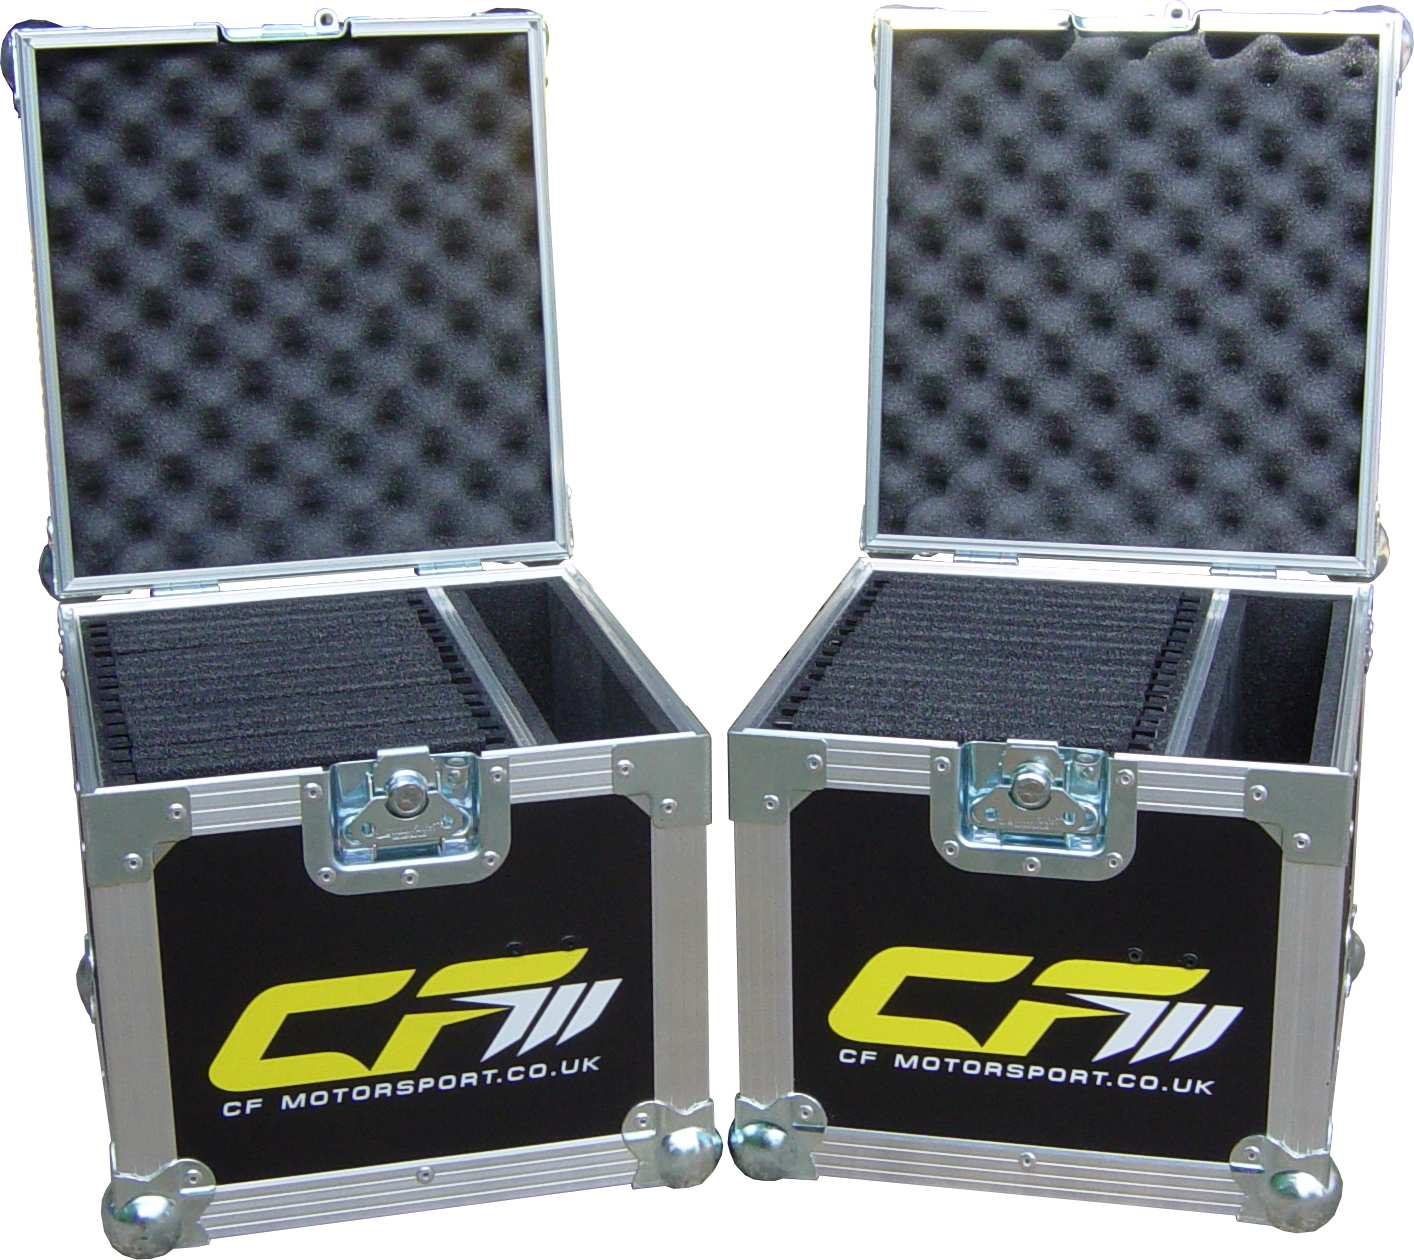 CF Motorsport Pit Number Cases